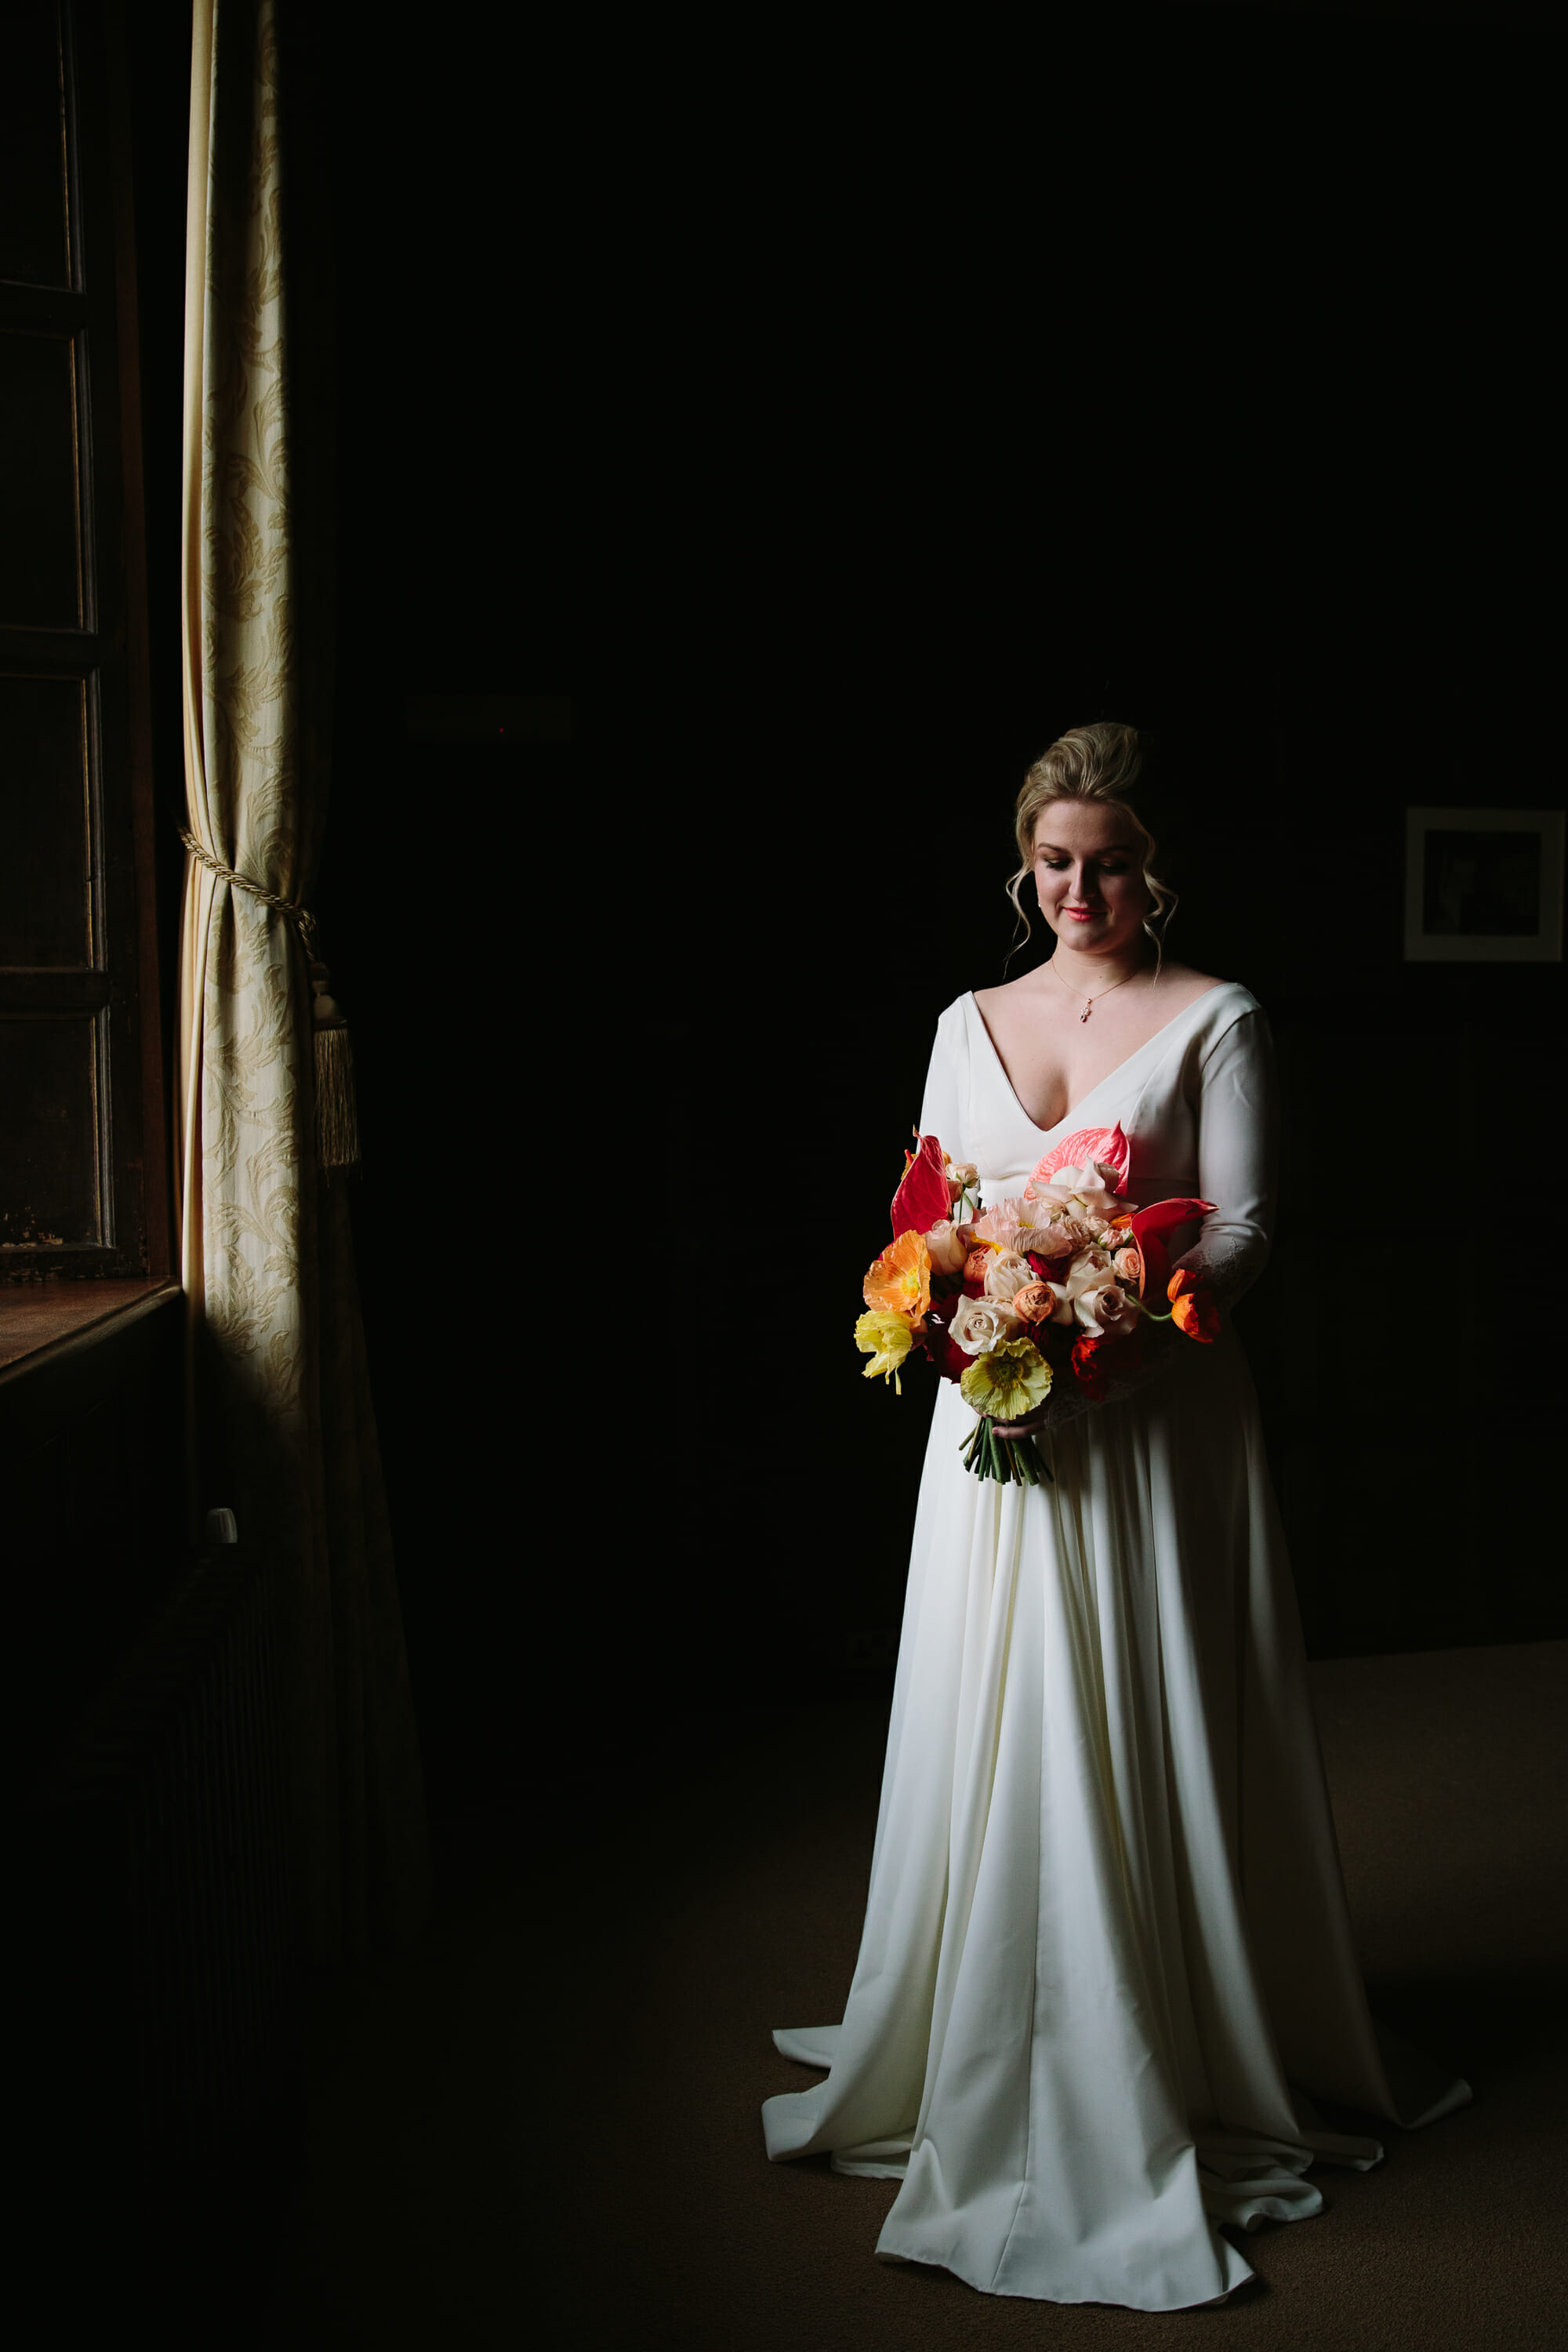 Philippa James Photography - Oxfordshire Wedding Photographer